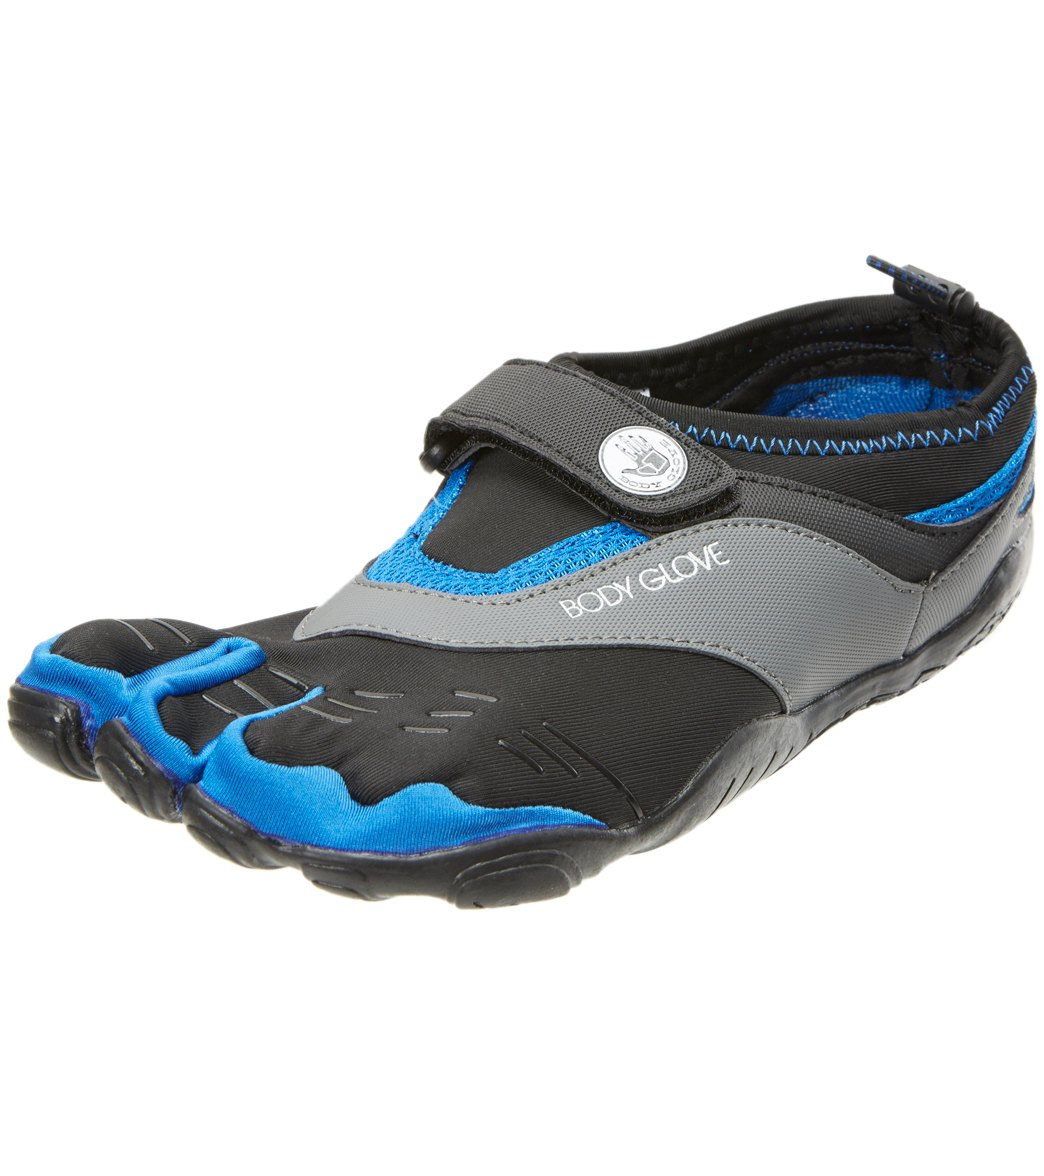 d54ad2366068 Body Glove Men s 3T Max Water Shoe at SwimOutlet.com - Free Shipping